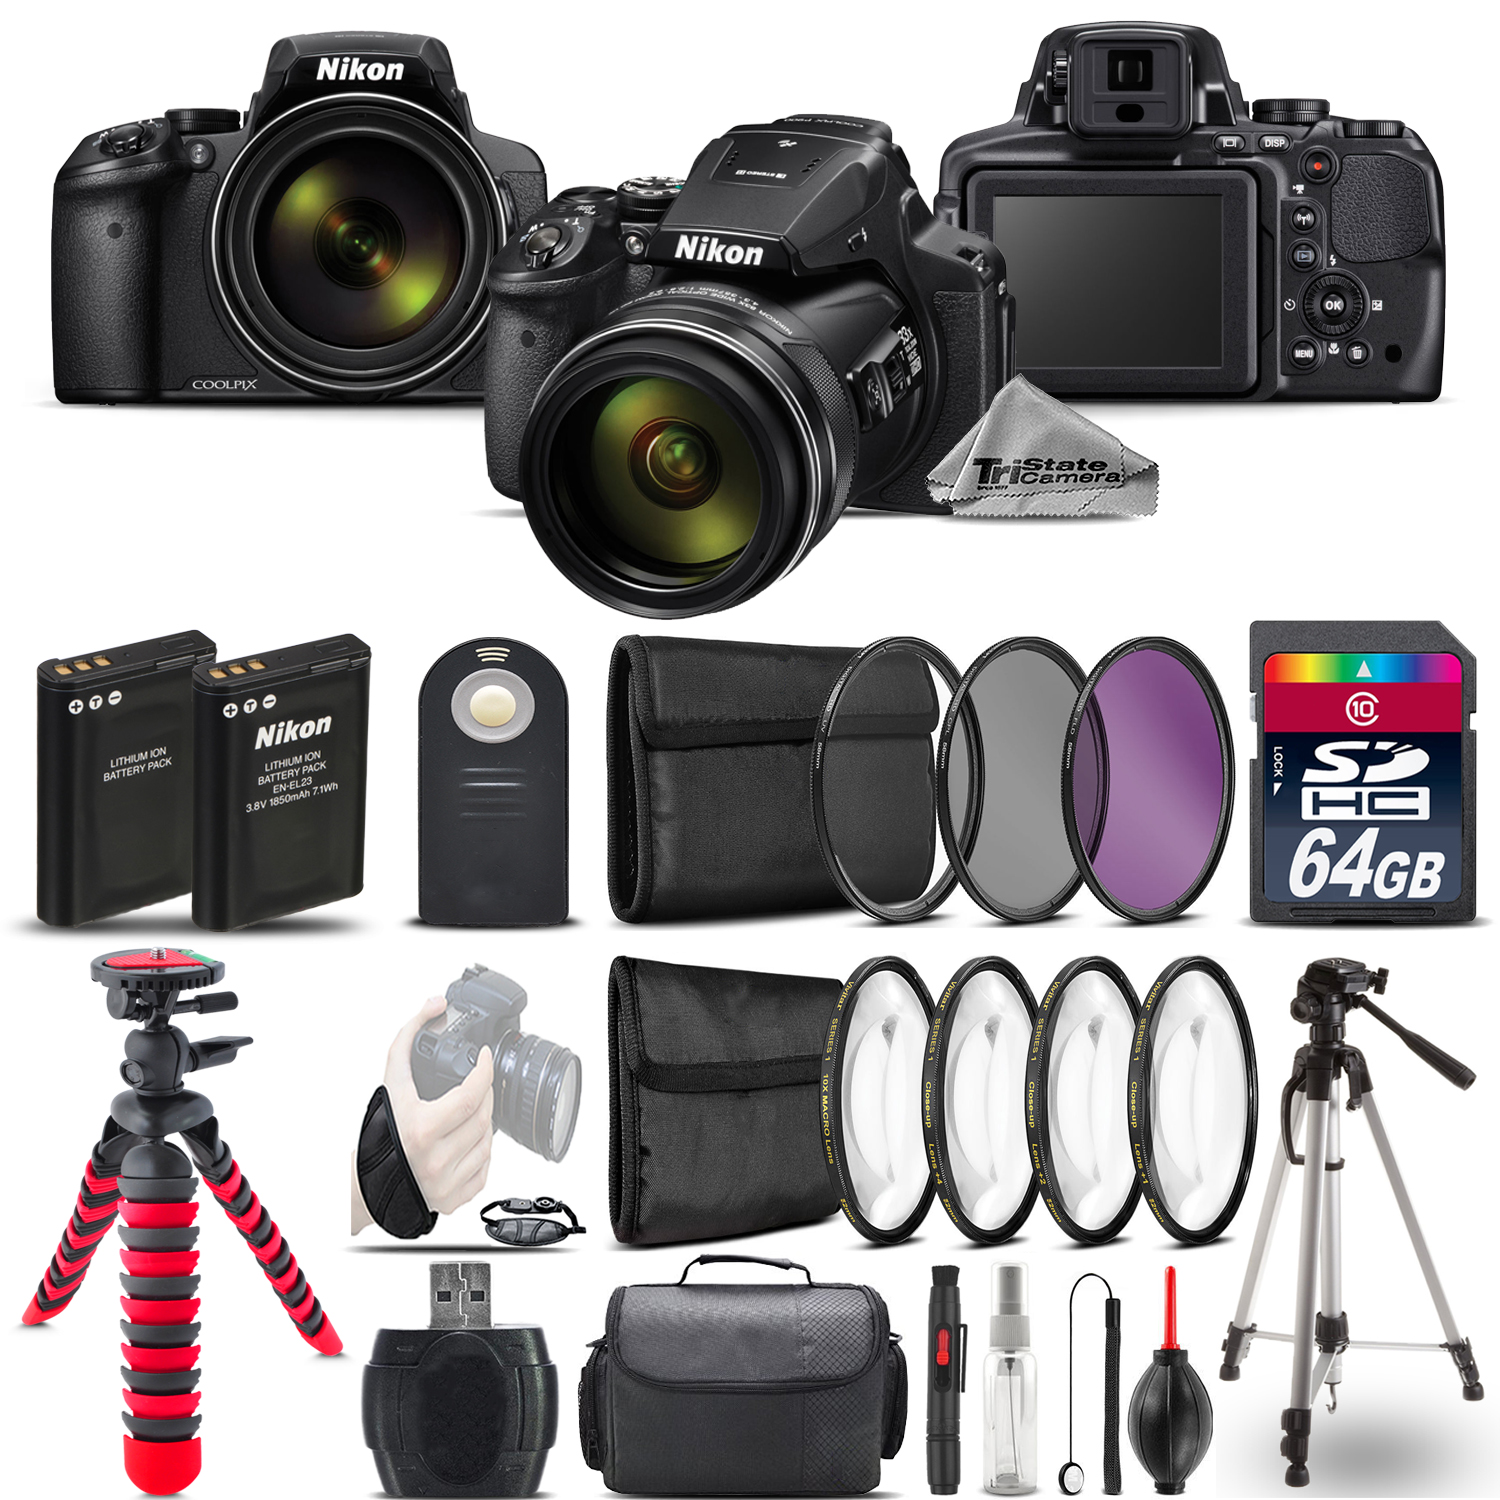 Nikon COOLPIX P900 Digital Camera + DSLR & Spider Tripod  + EXT BAT - 64GB Kit